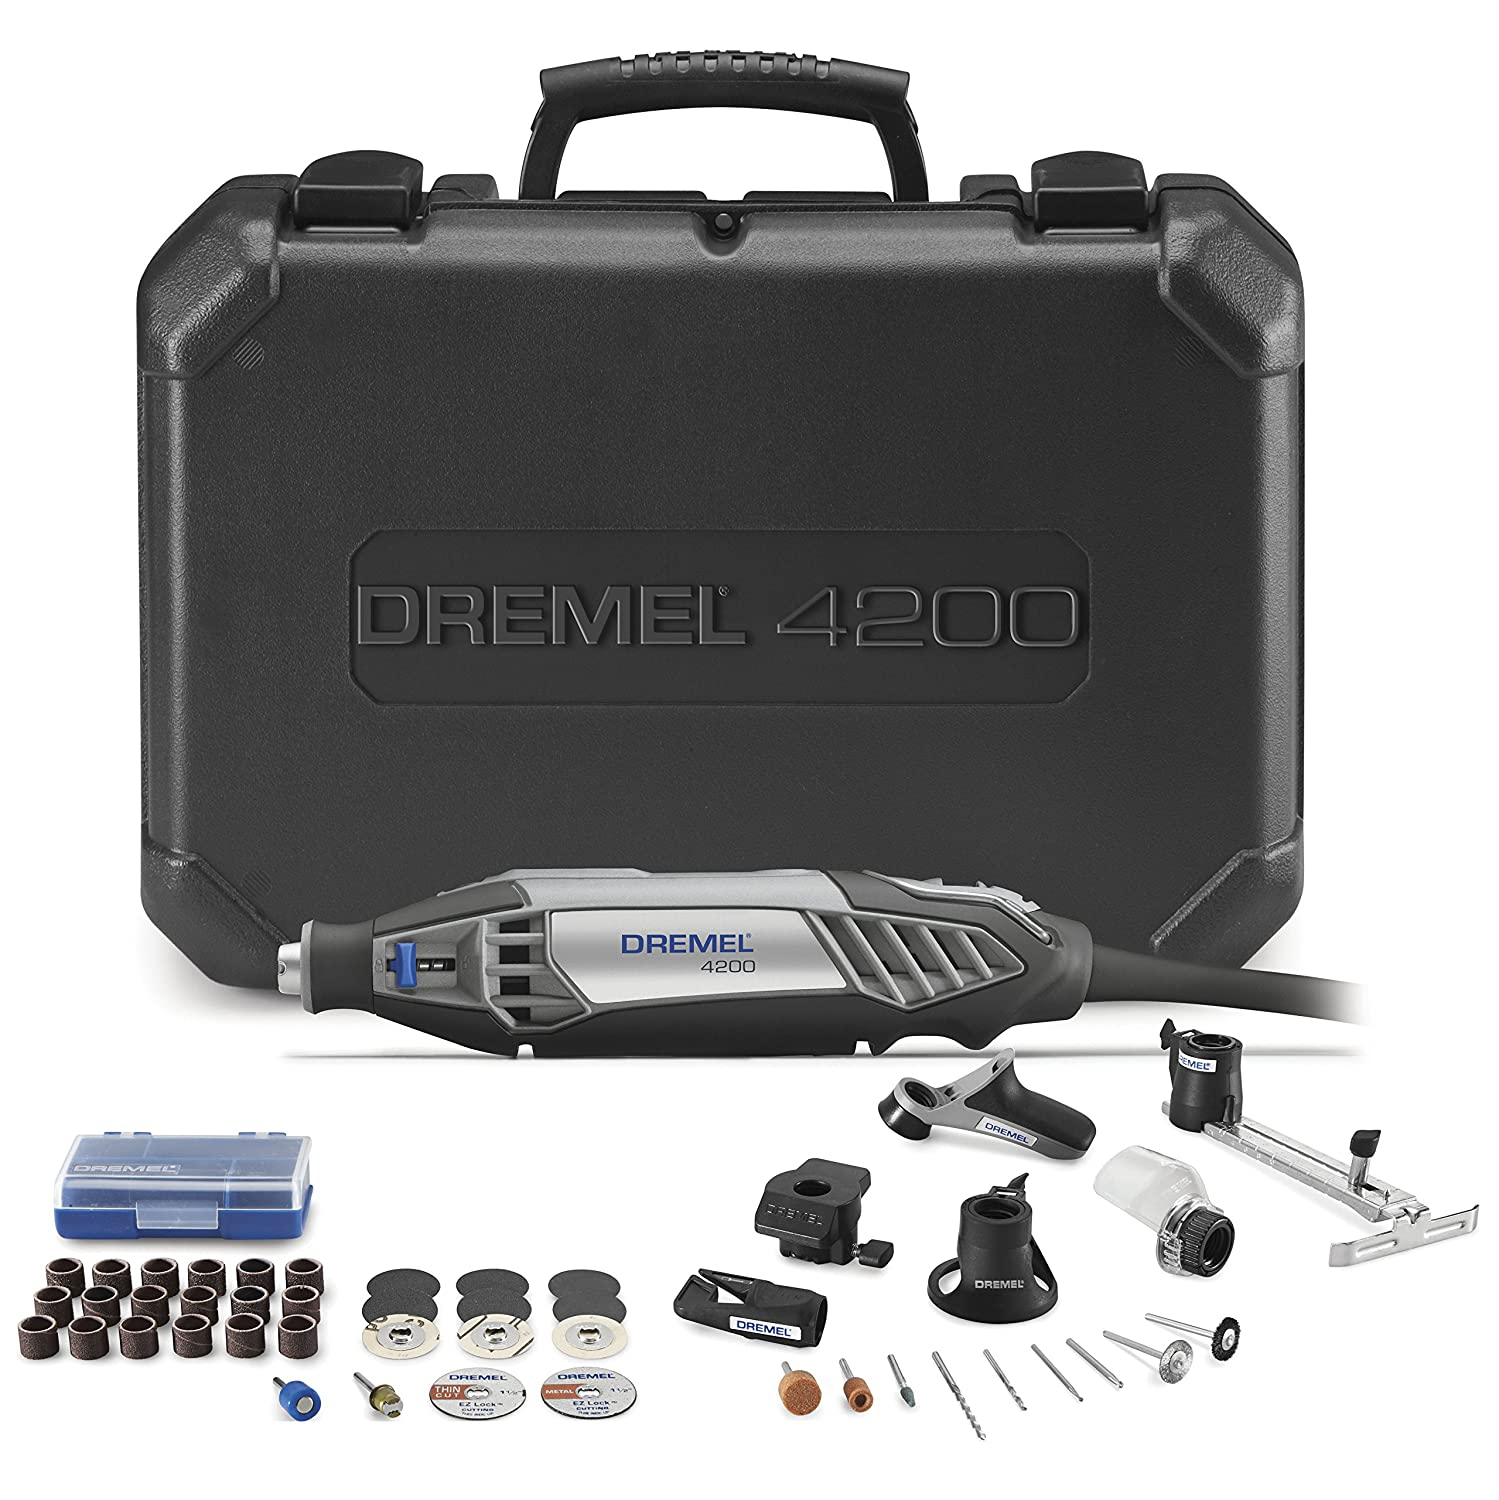 Dremel 4200-6 40 High Performance Rotary Tool with EZ Change, 47-Piece Kit